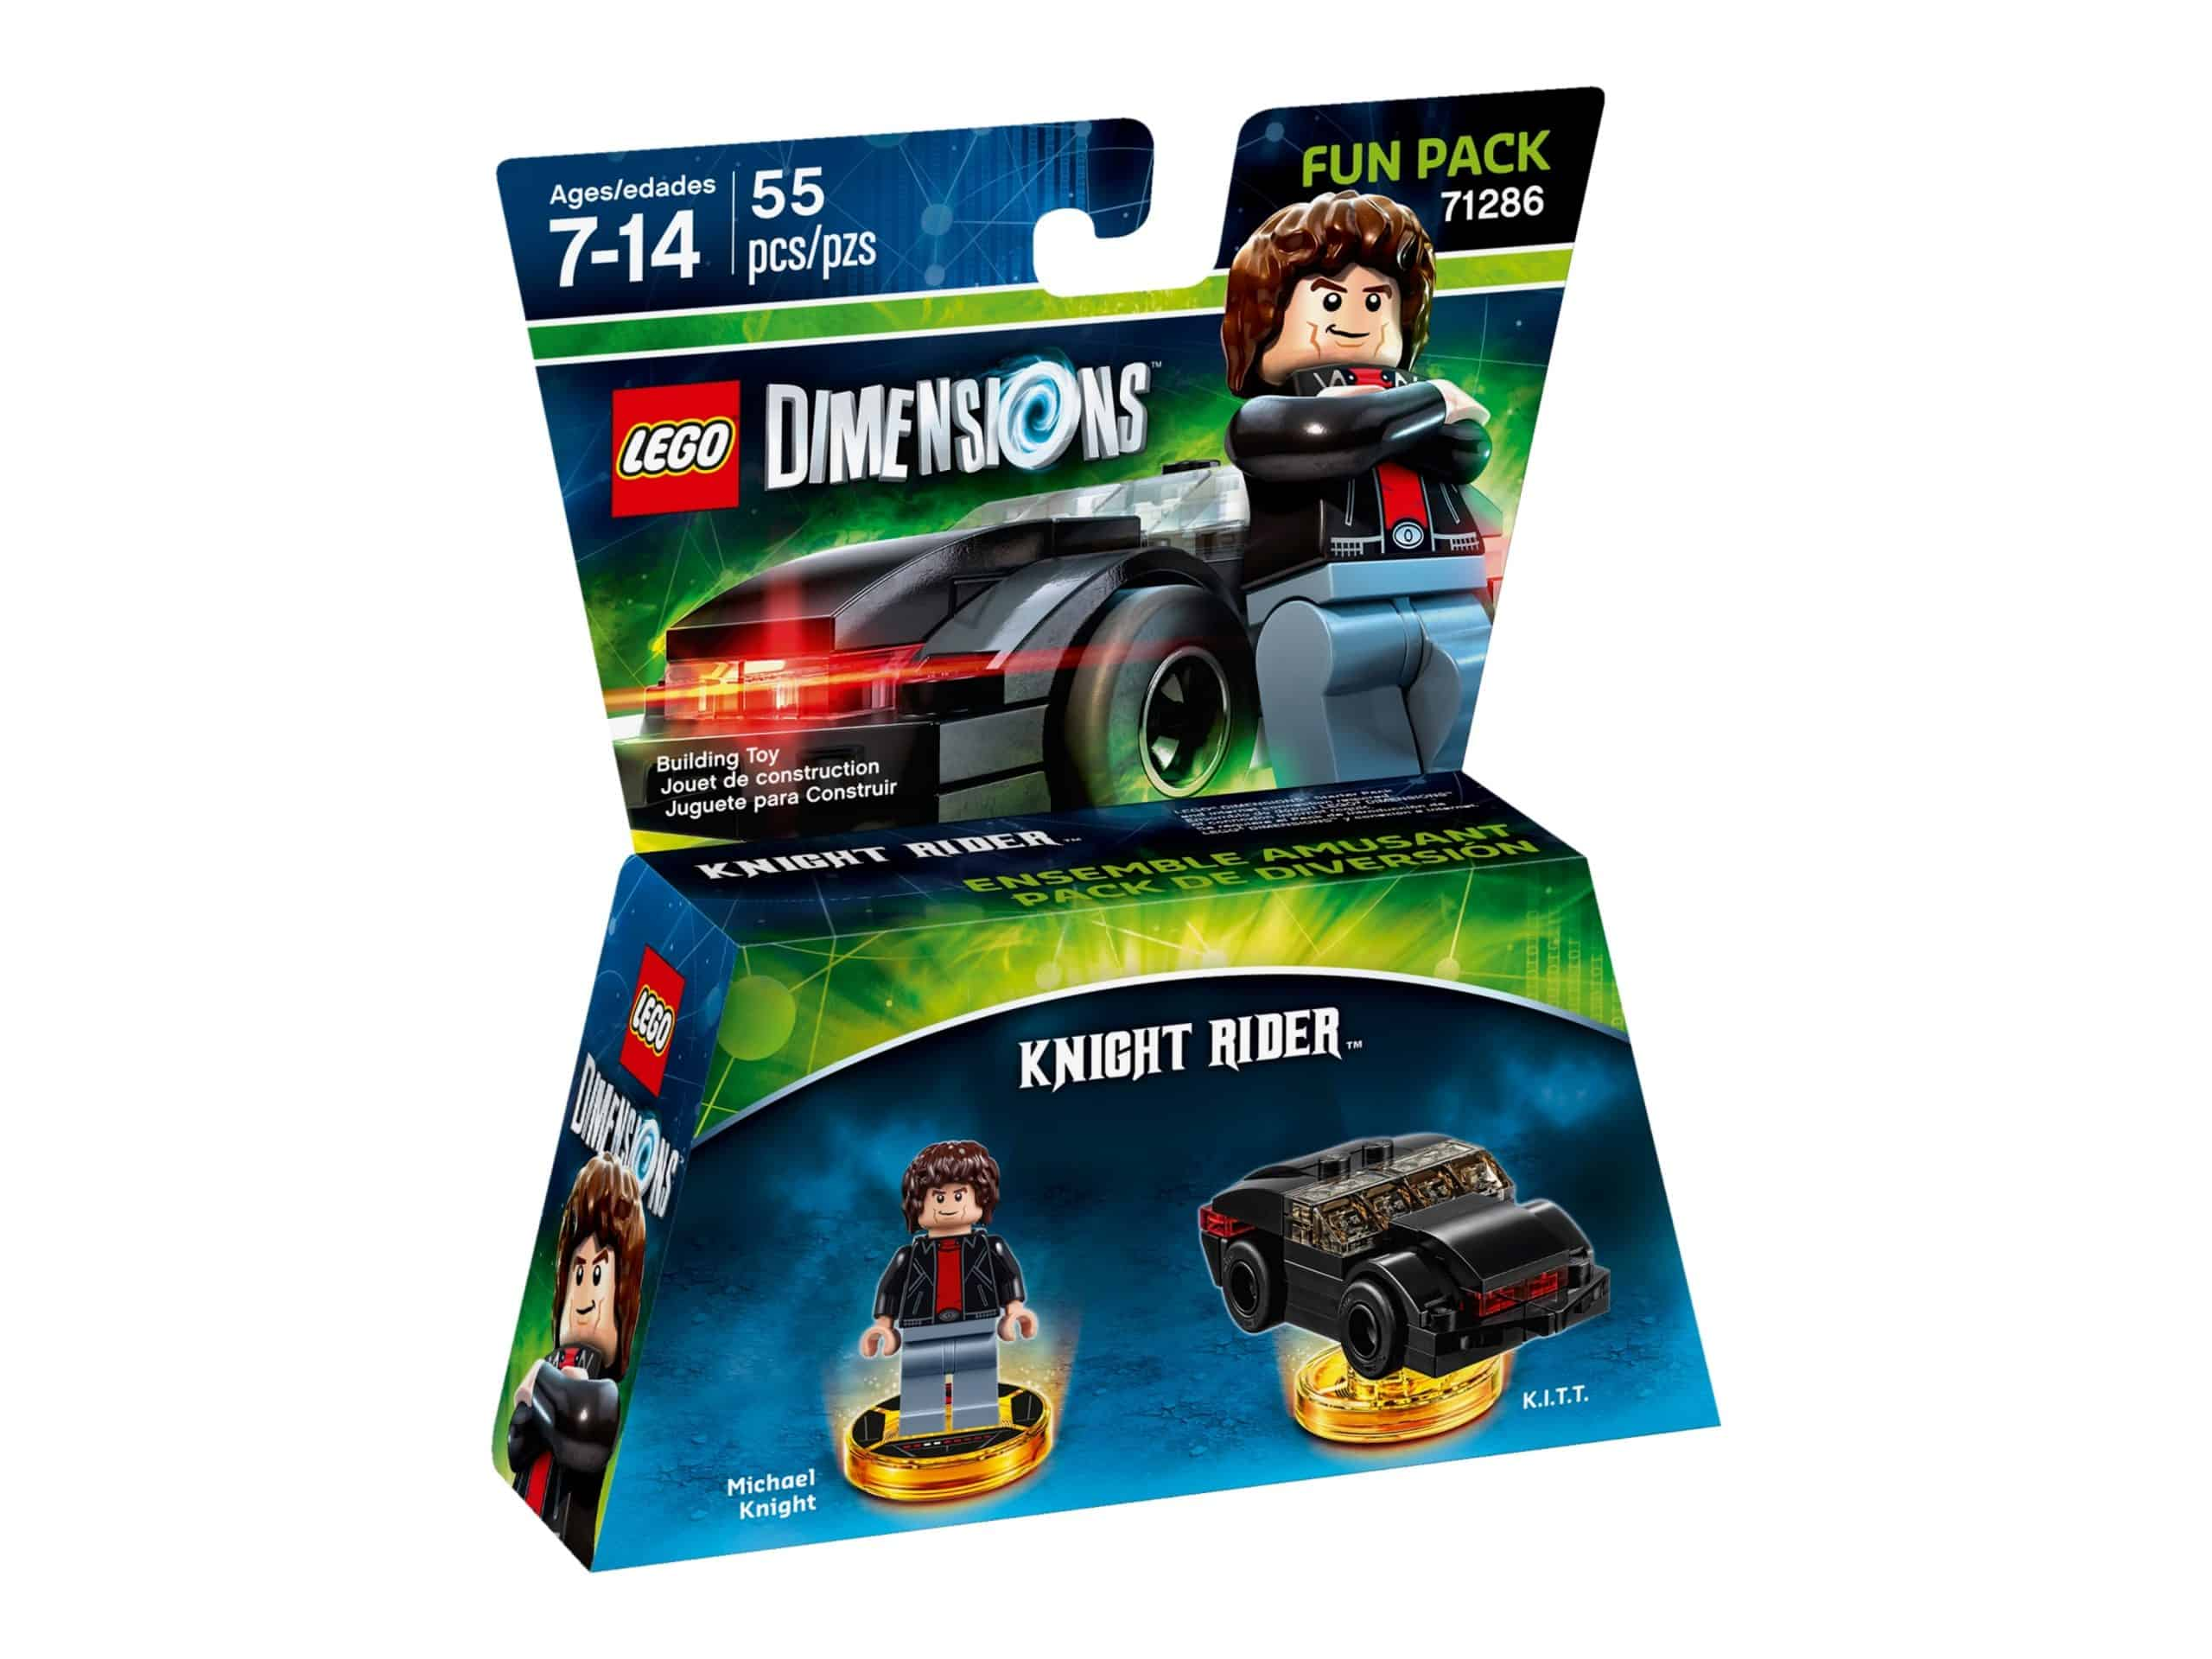 lego 71286 knight rider fun pack scaled